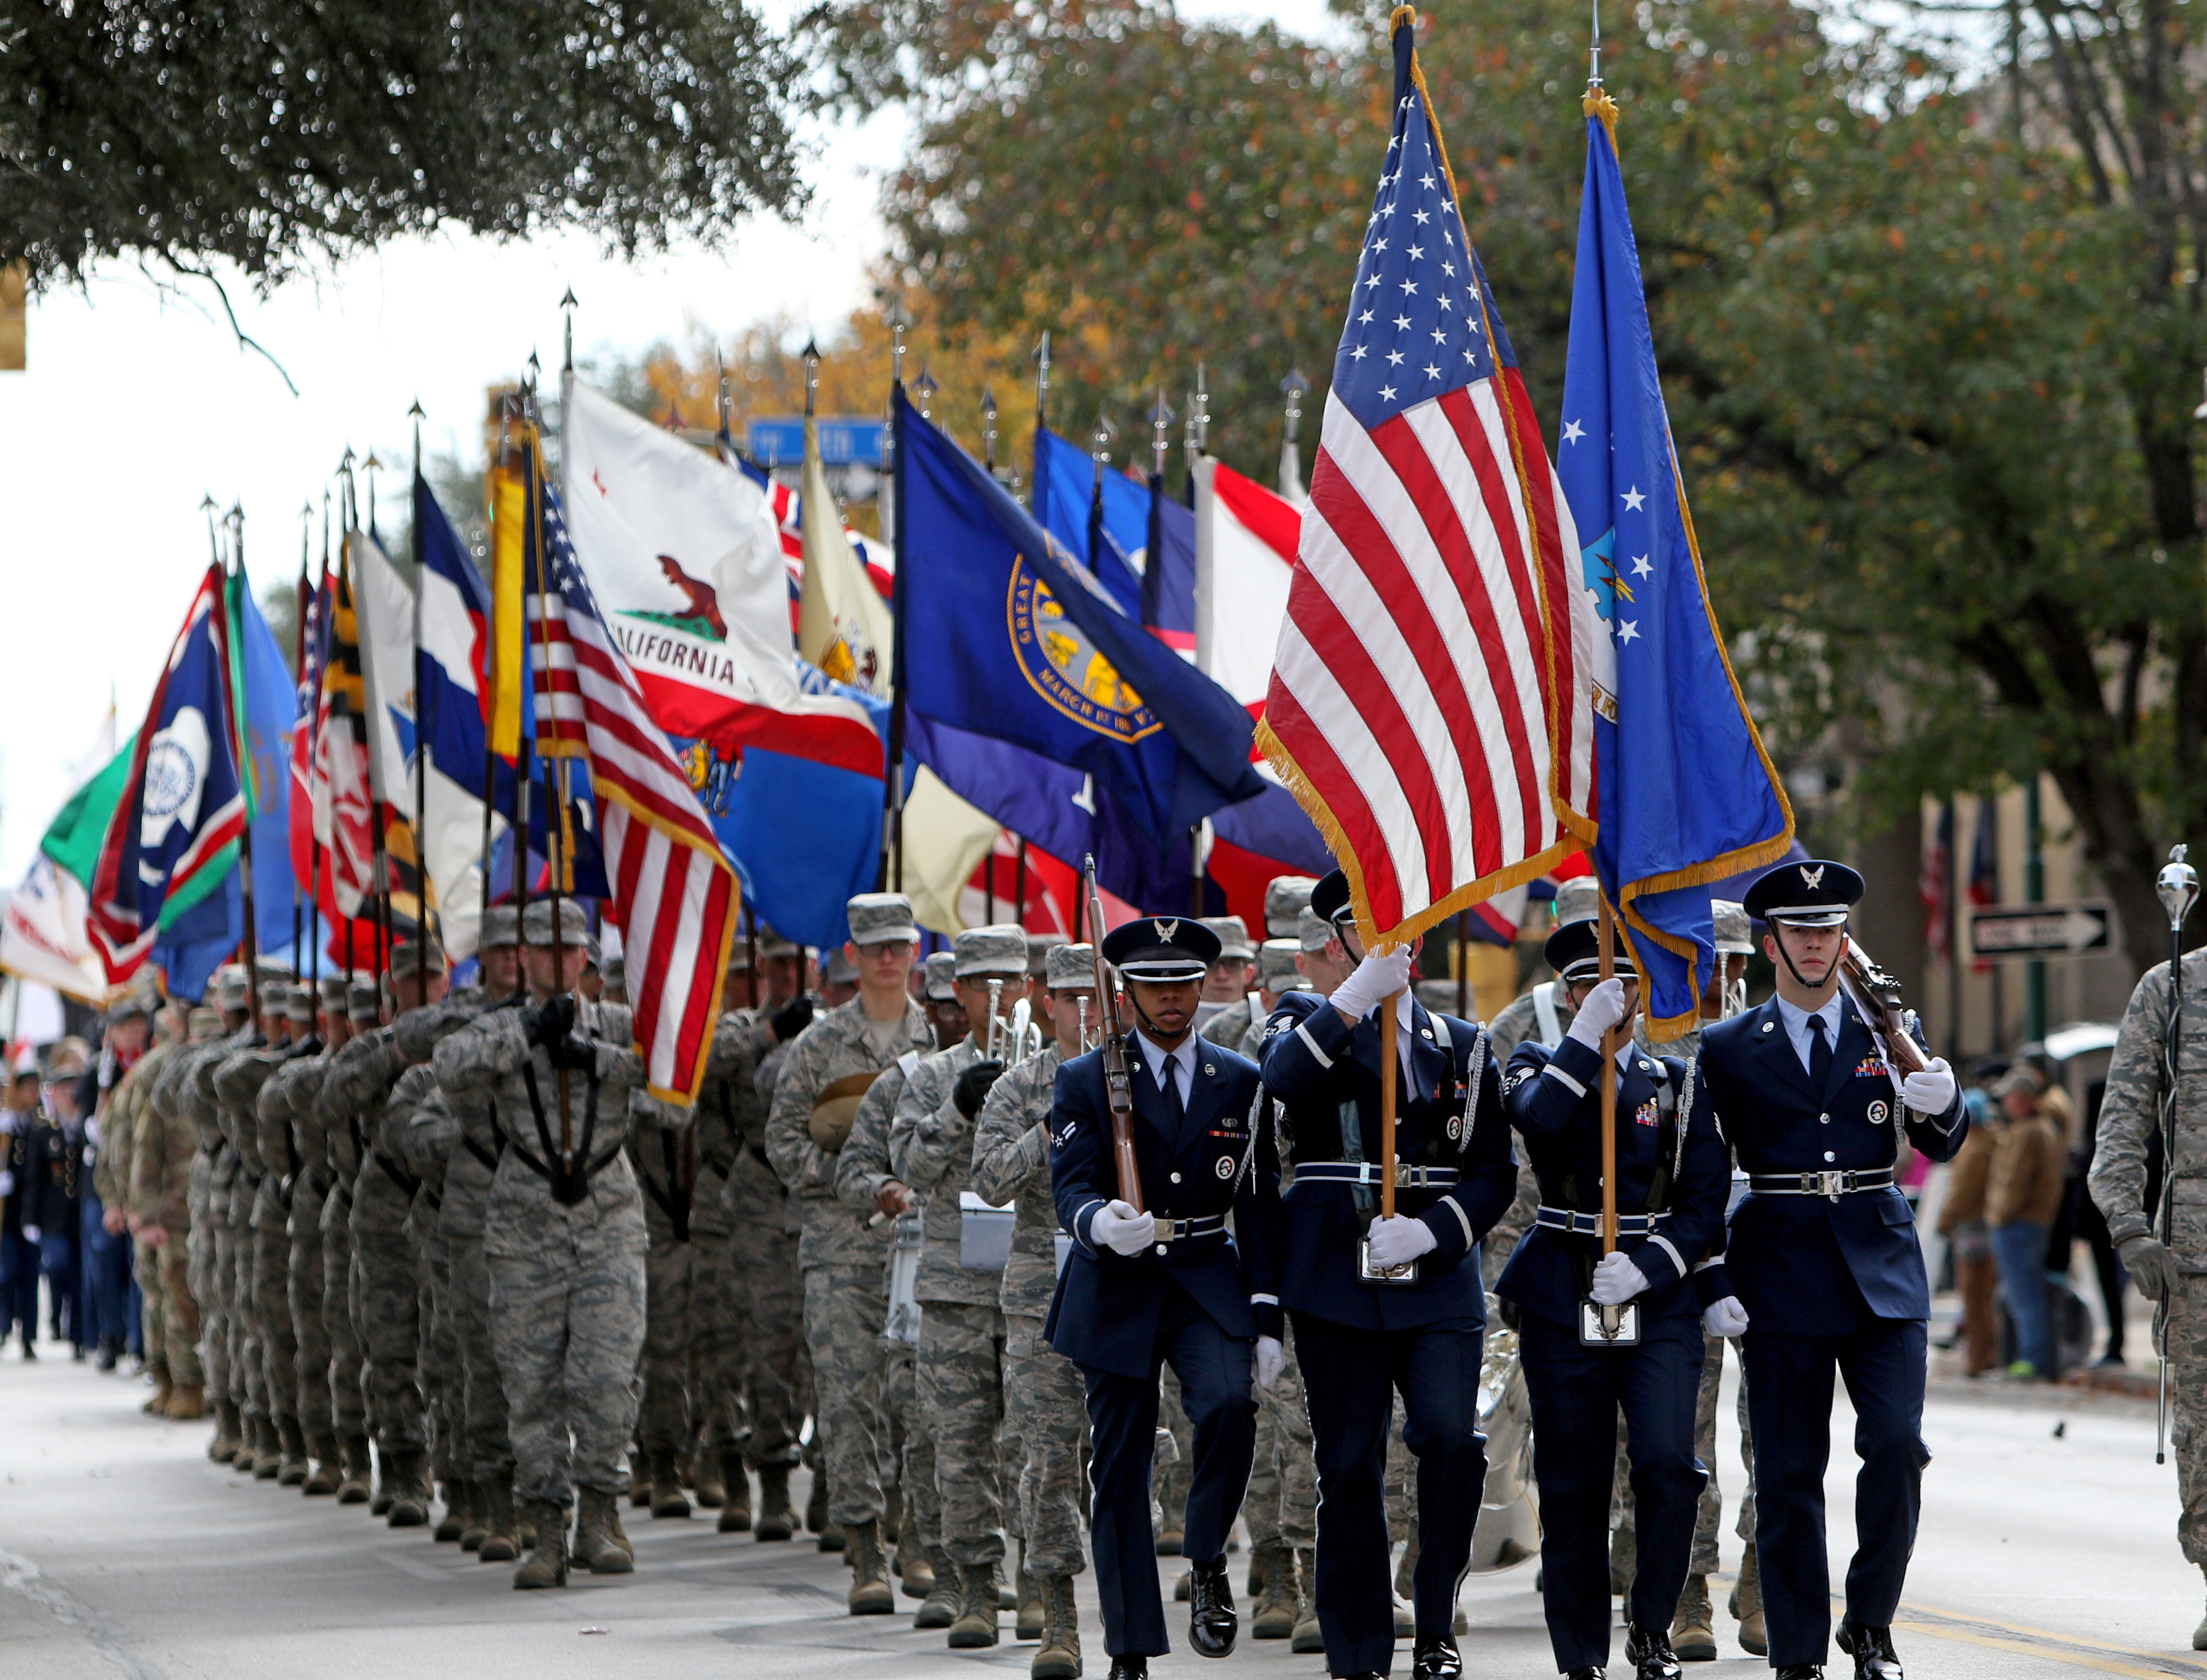 Members of the active duty military take part in the Veterans Day parade Saturday, Nov. 10, 2018, in downtown Wichita Falls on the 100th anniversary of the Armistice of Compiègne that ended fighting in World War I.